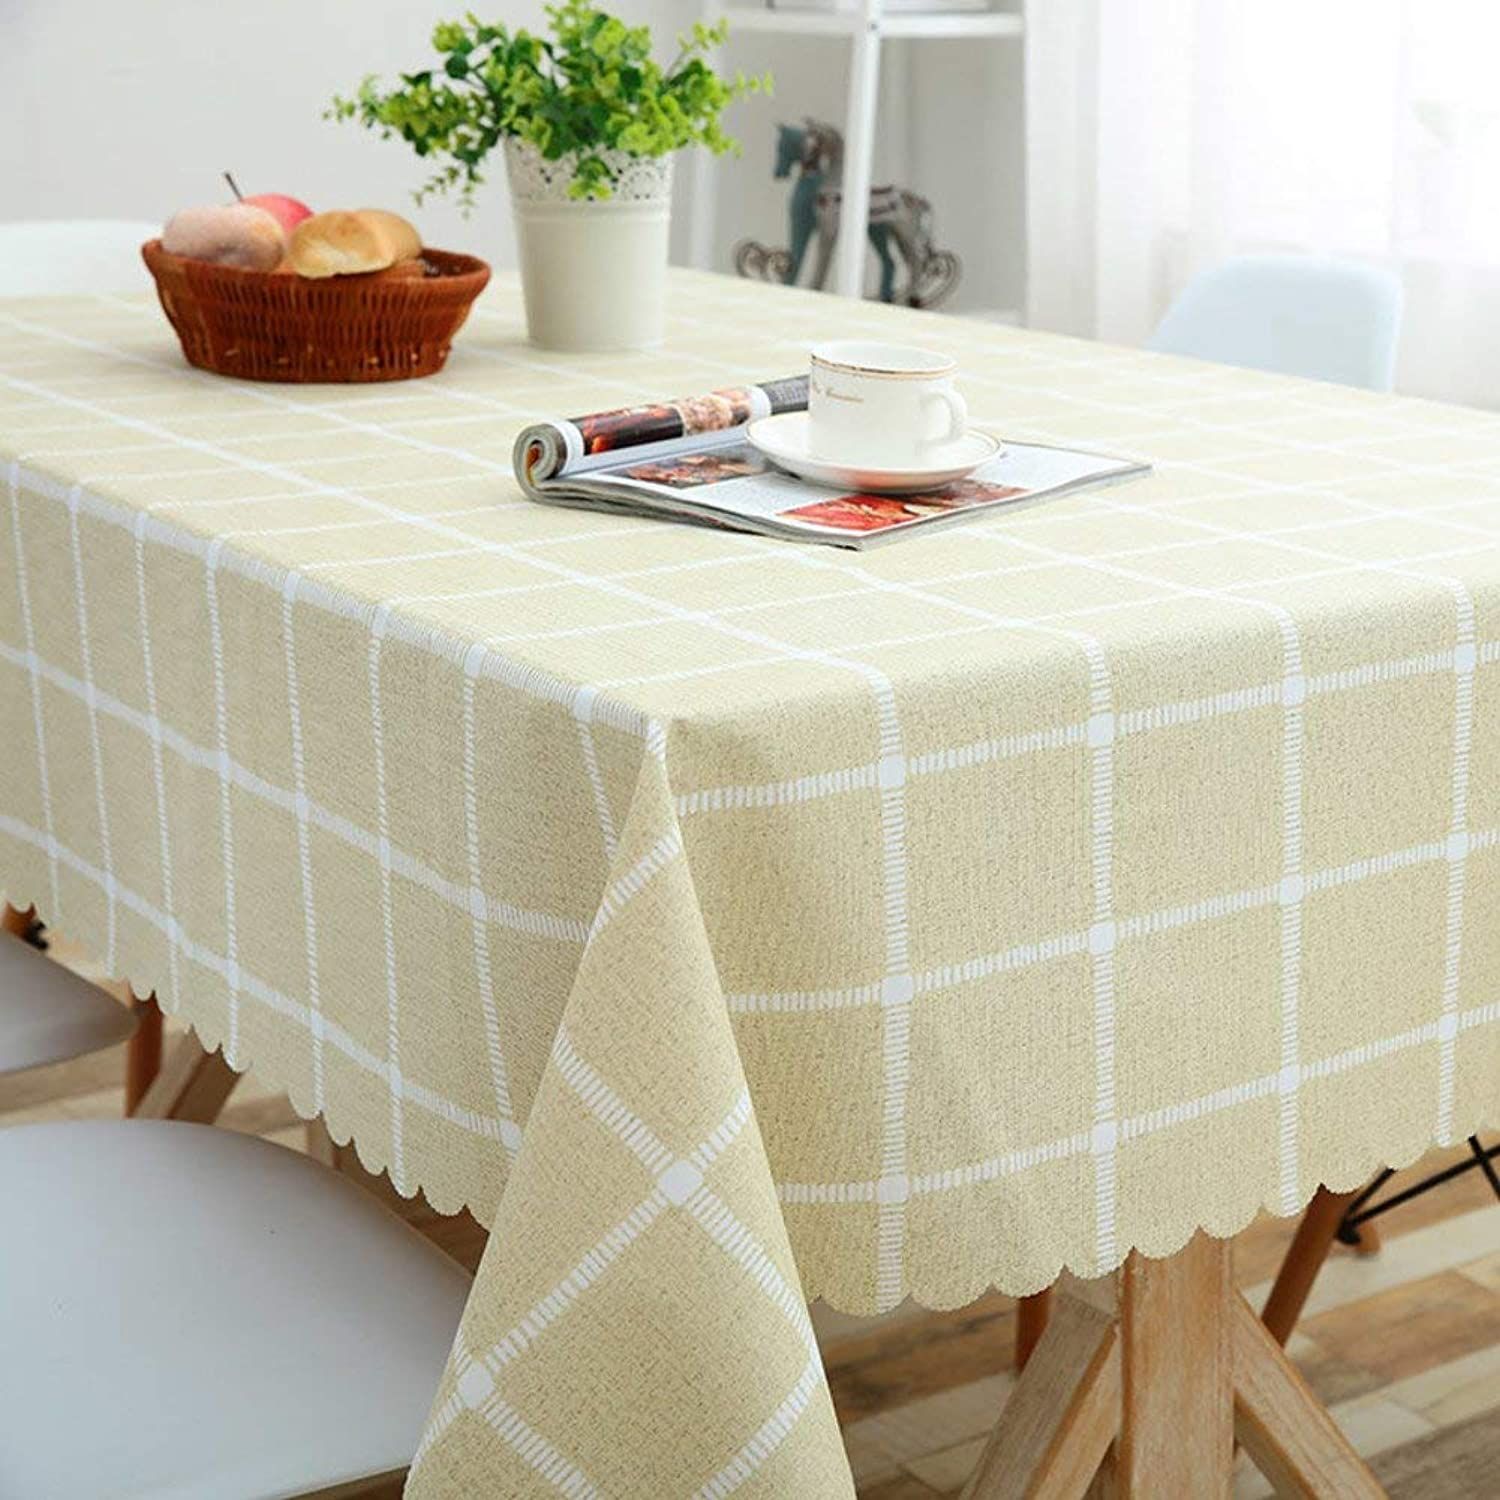 ahorra hasta un 50% WENYAO Home Dining Tablecloth Waterproof Oil-Proof Anti-Hot Anti-Hot Anti-Hot rectangSmall Fresh Coffee tabtablecloth Cloth Art Decorations tabcover Projoector Cloth for Dining Room,Beige_120170cm  caliente